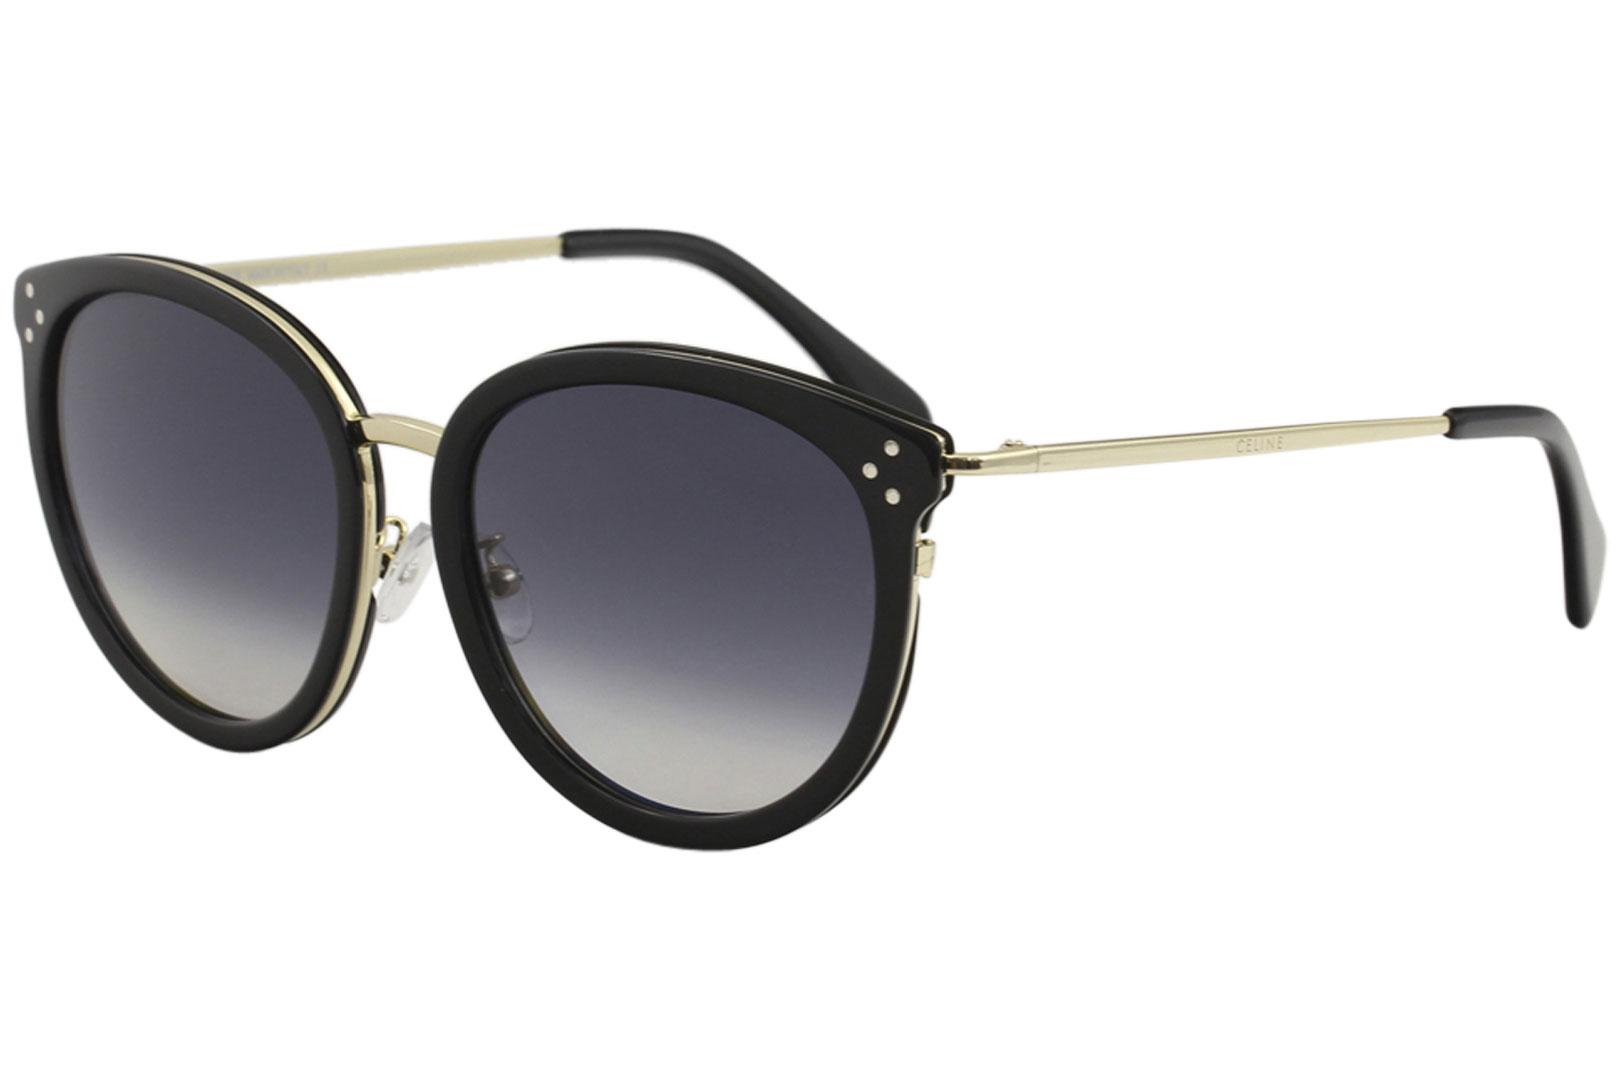 c22adfe7a314 Celine Women s CL40033F CL 40033 F Fashion Round Sunglasses by Celine.  Touch to zoom